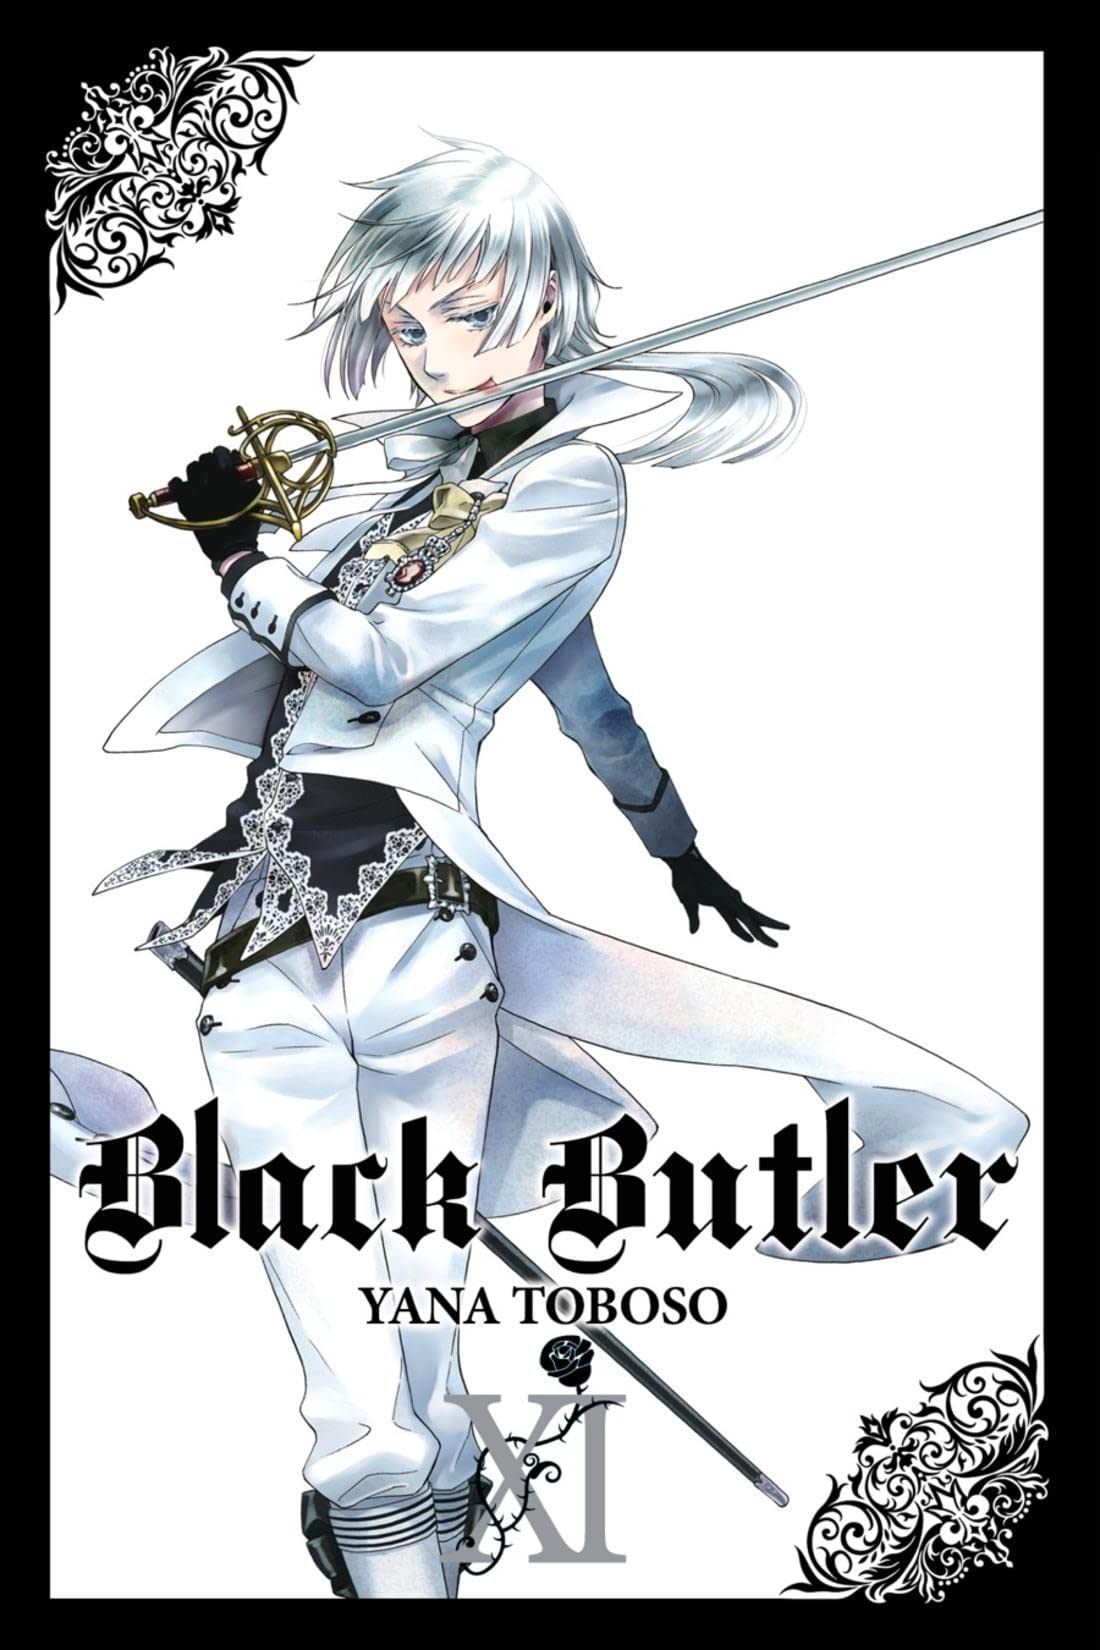 Black Butler Vol. 11